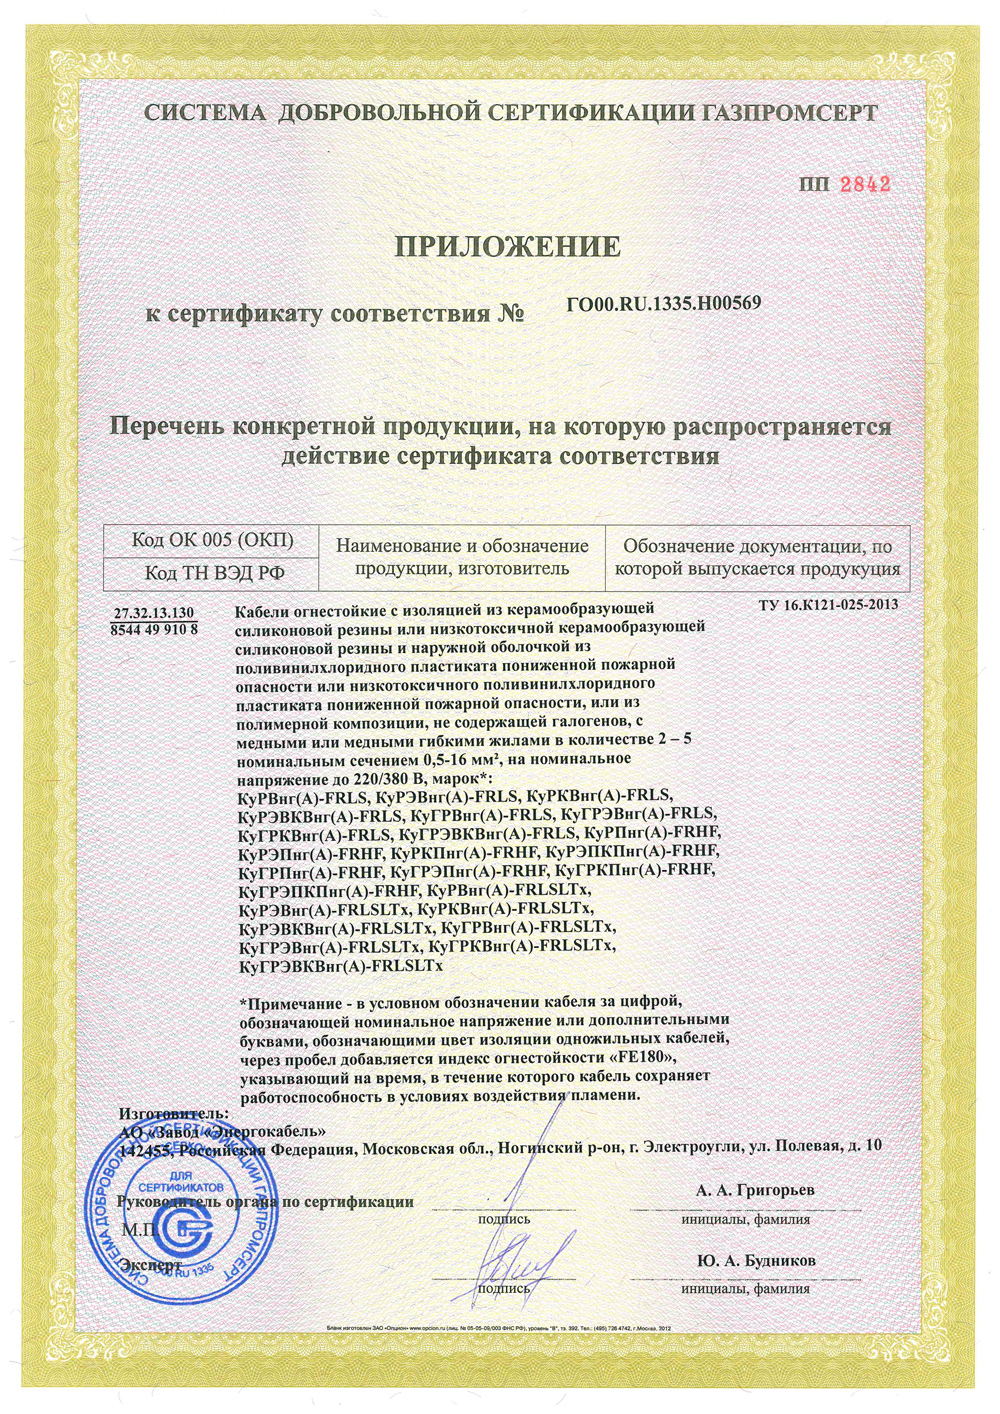 Certificate of Conformity No. ГО00.RU.1335.Н00569.